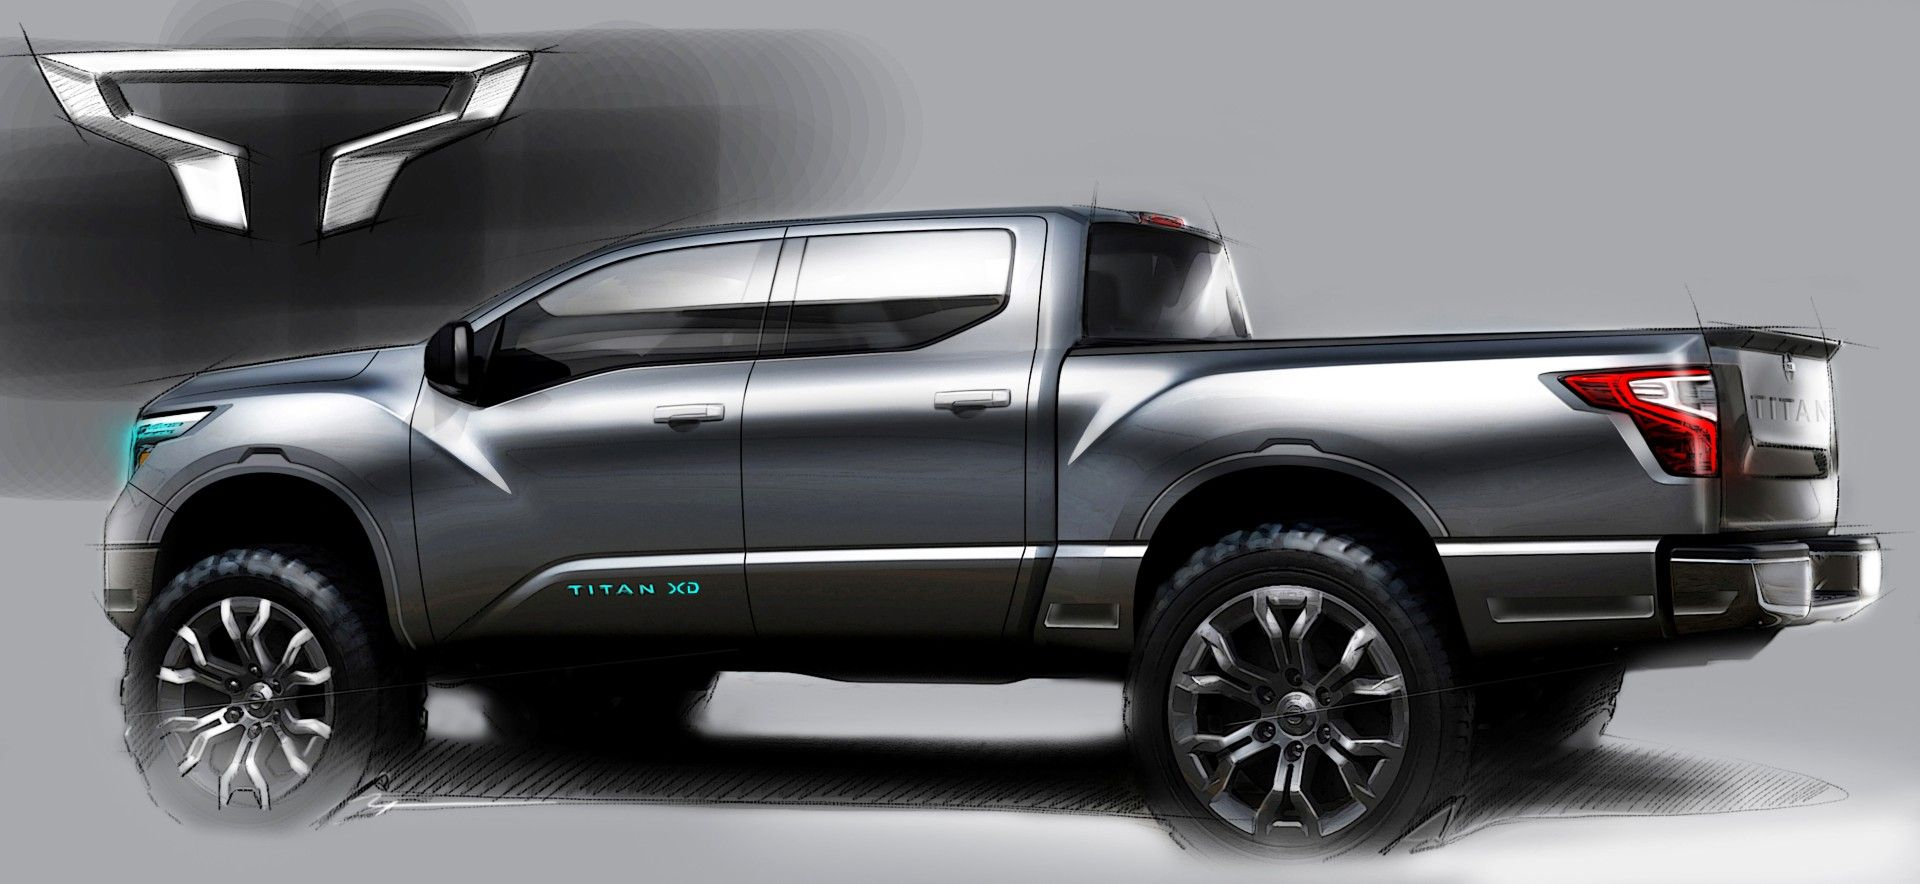 2016 nissan titan 1 920 884 pixels nissan titan wheels rims auto ext sketch. Black Bedroom Furniture Sets. Home Design Ideas